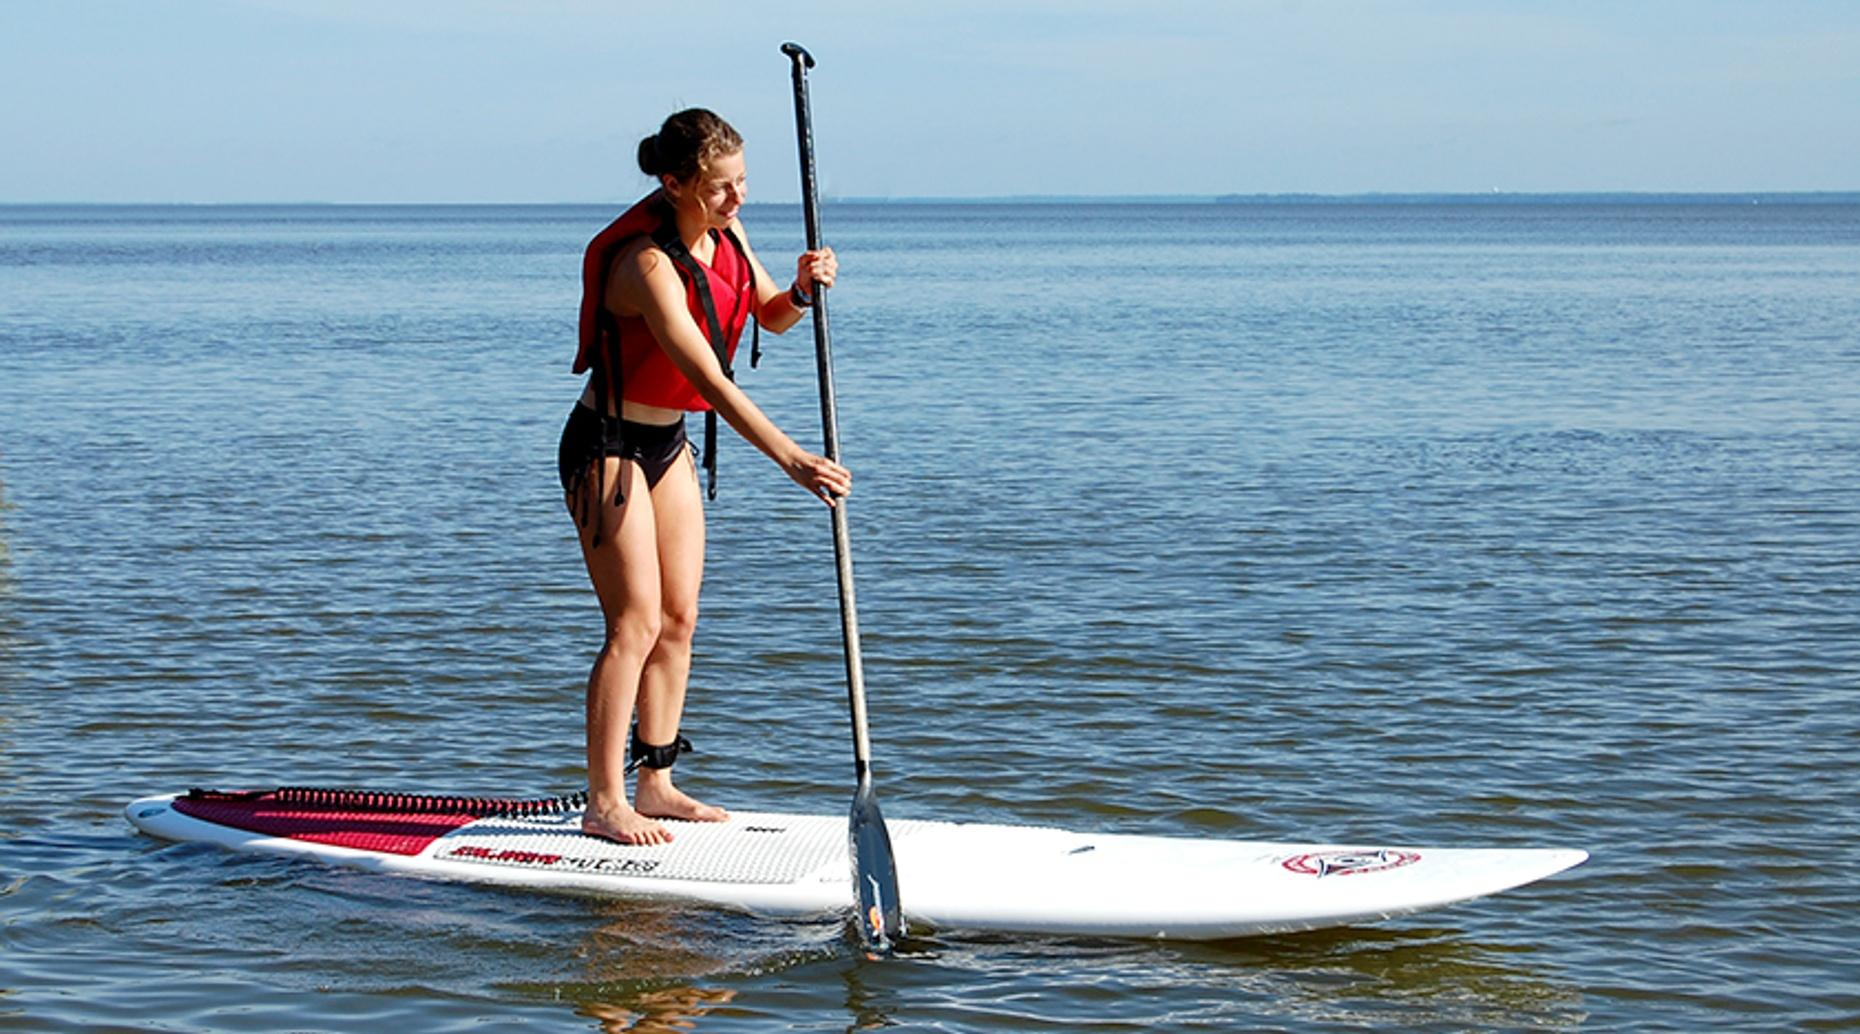 Stand-Up Paddleboard Tour in Naples